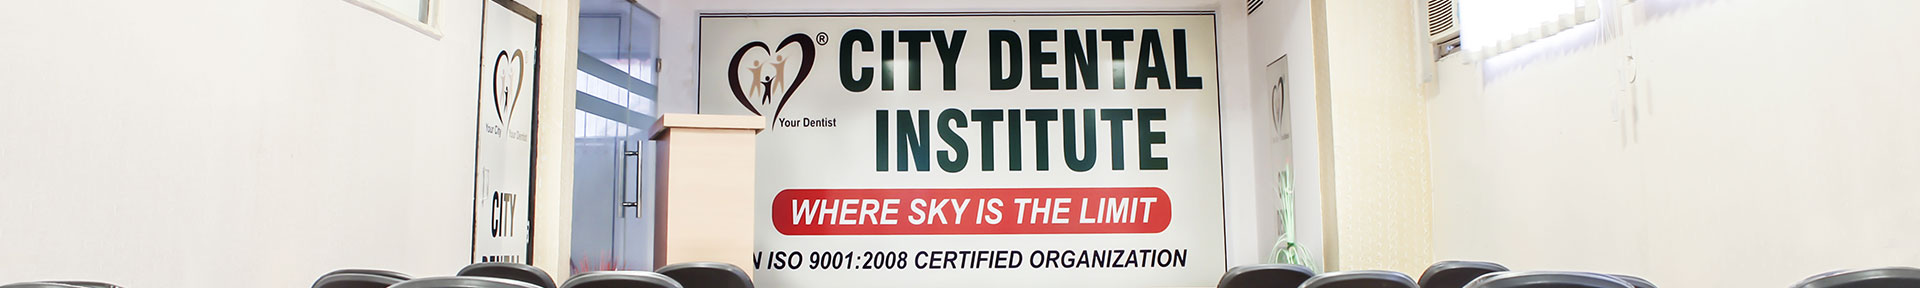 City Dental Institute